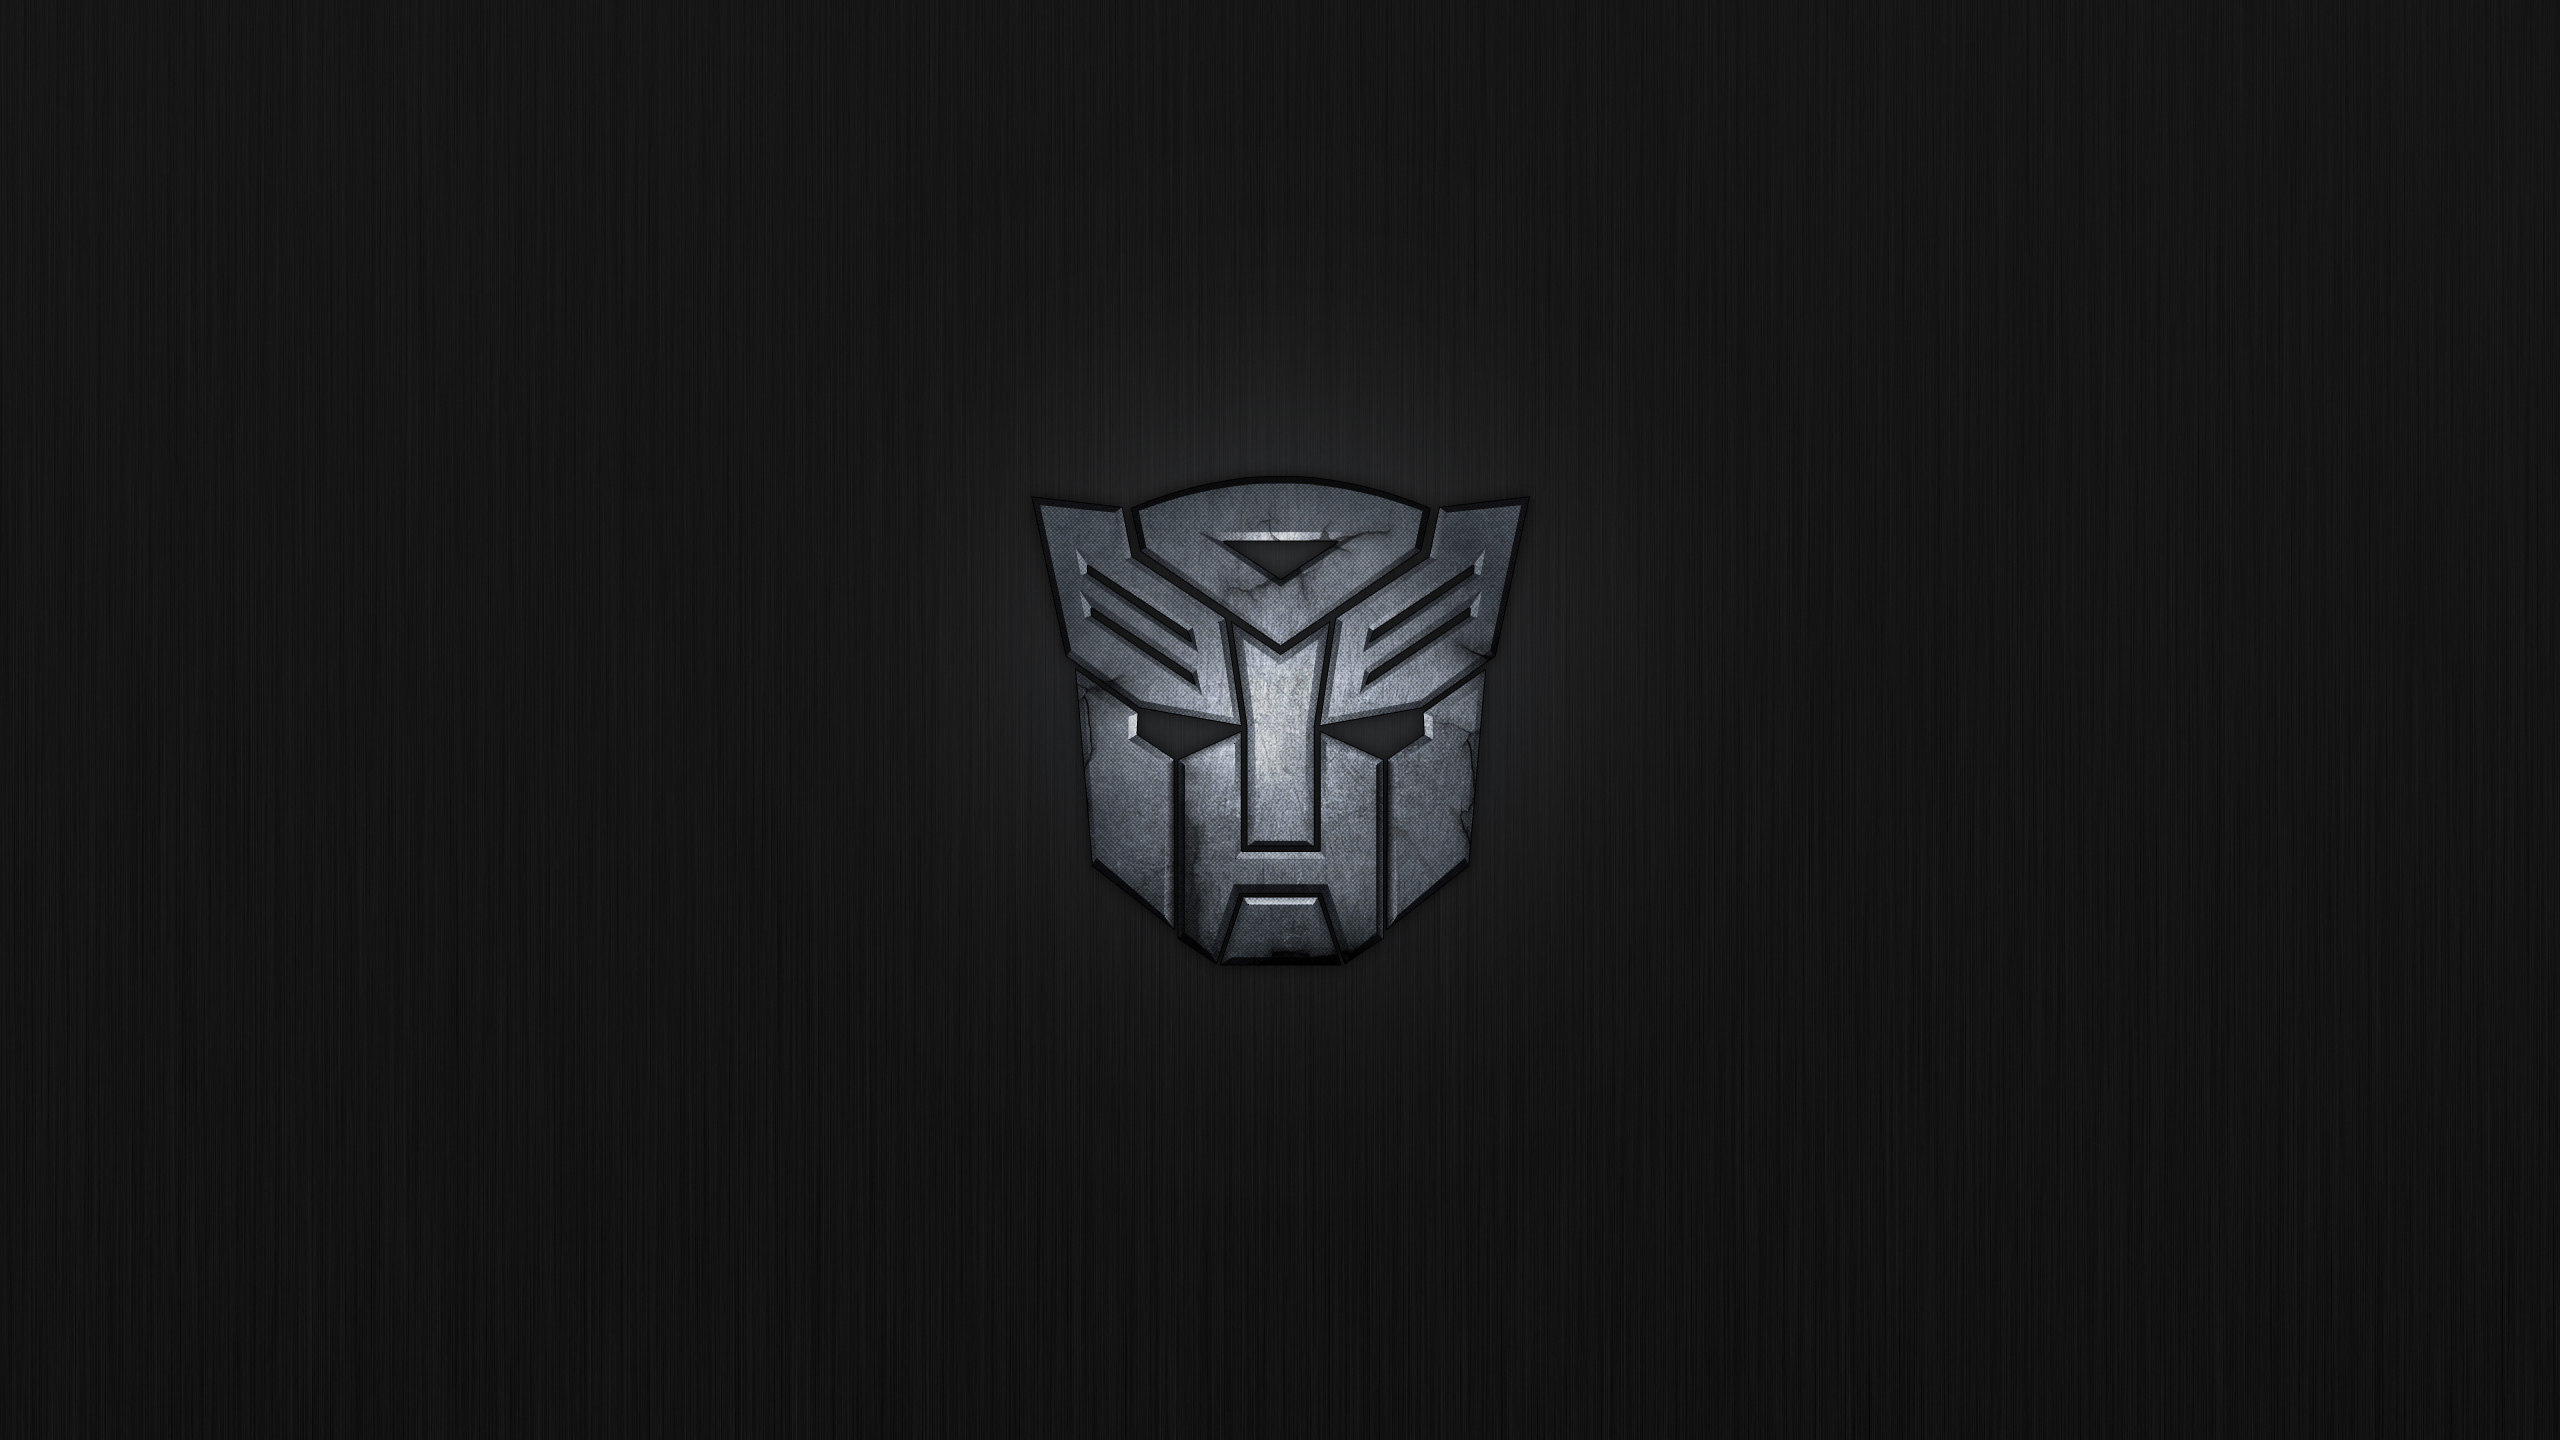 Autobot Symbol Wallpaper - WallpaperSafari